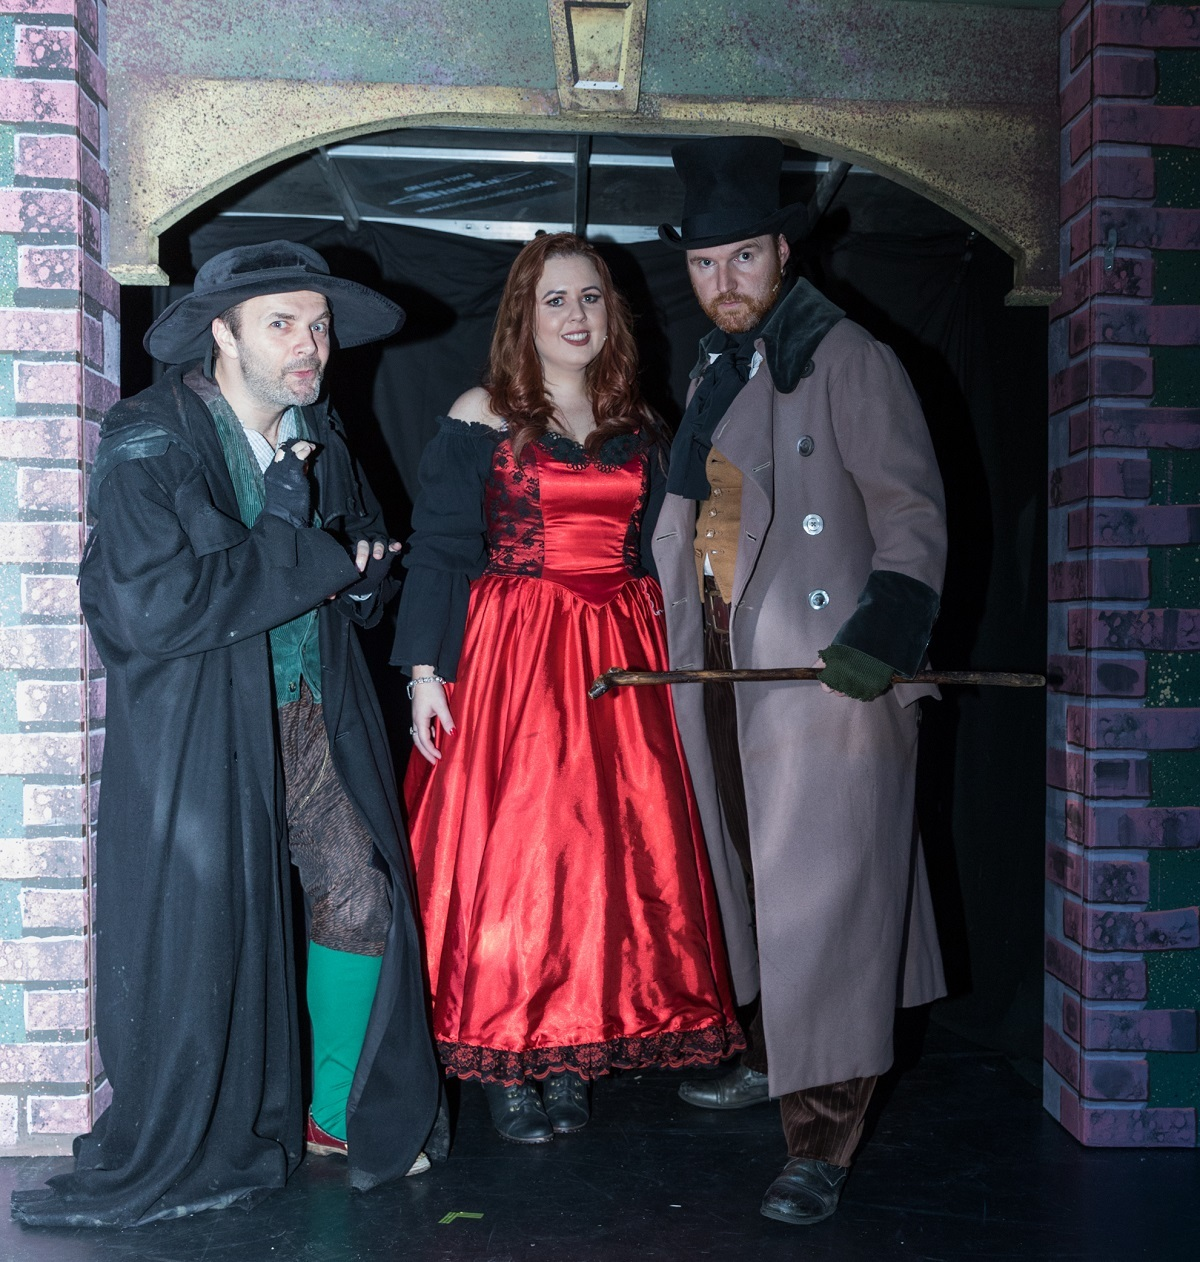 From left to right:Richard Ross as Fagin, Domonique McClafferty as Nancy, Peter McClafferty as Bill Sykes